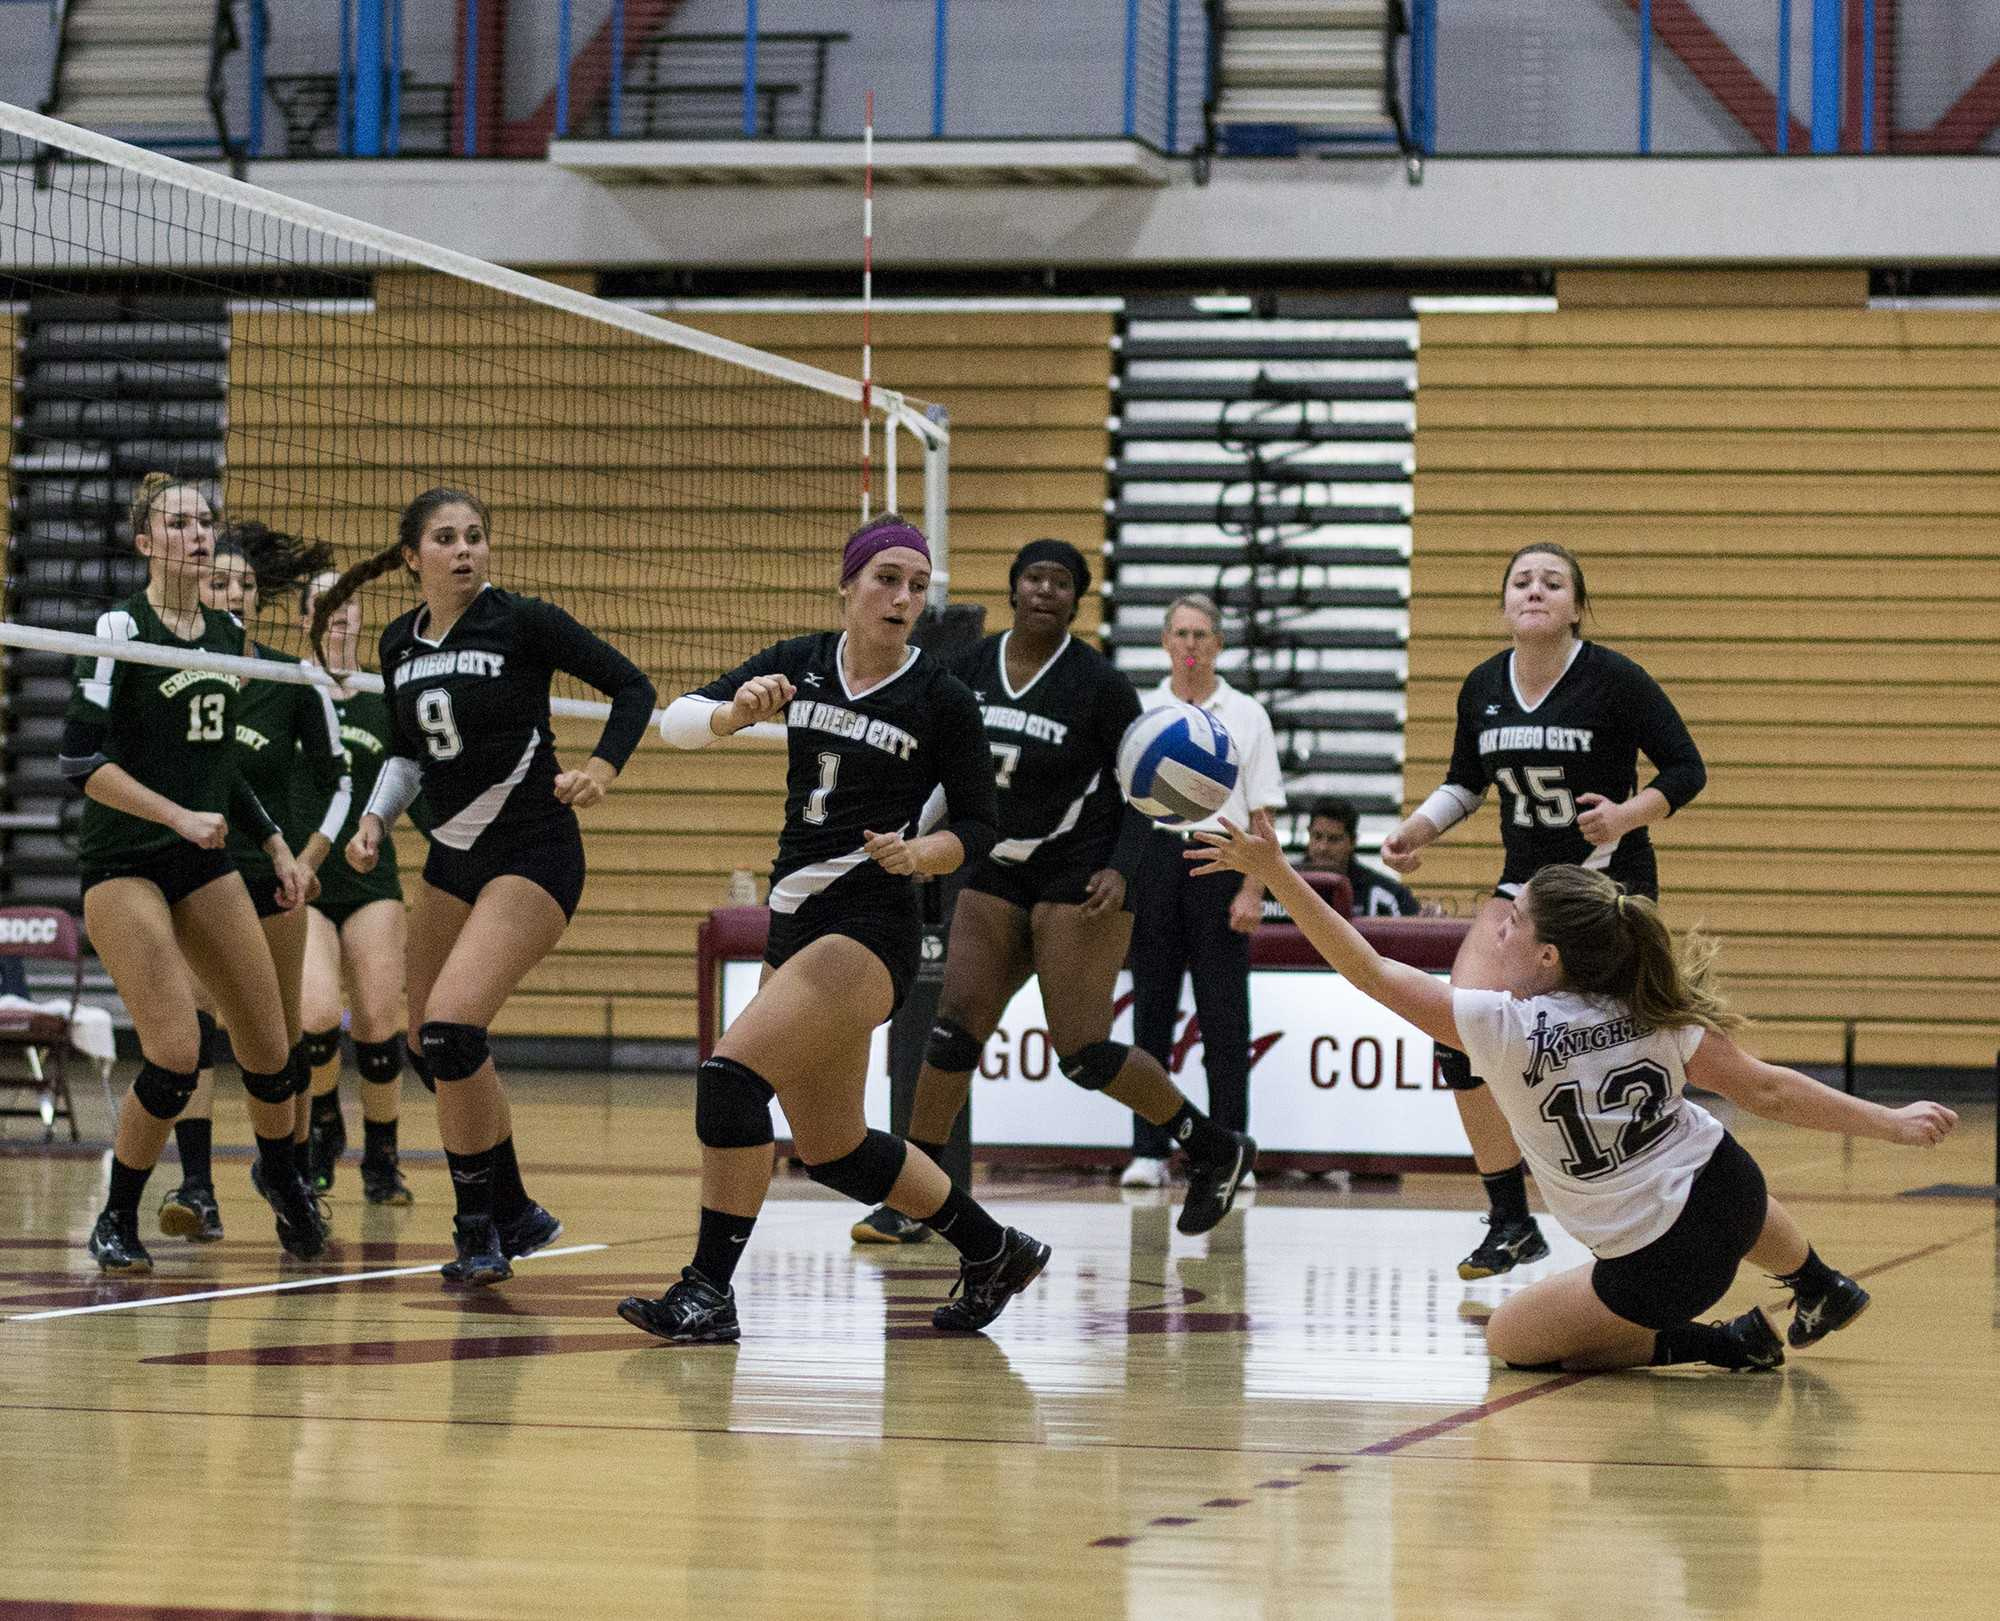 During the second quarter of the match between the Knights and Grossmont College on Oct. 2, the Knights sent the ball over the net and were met with a sharp